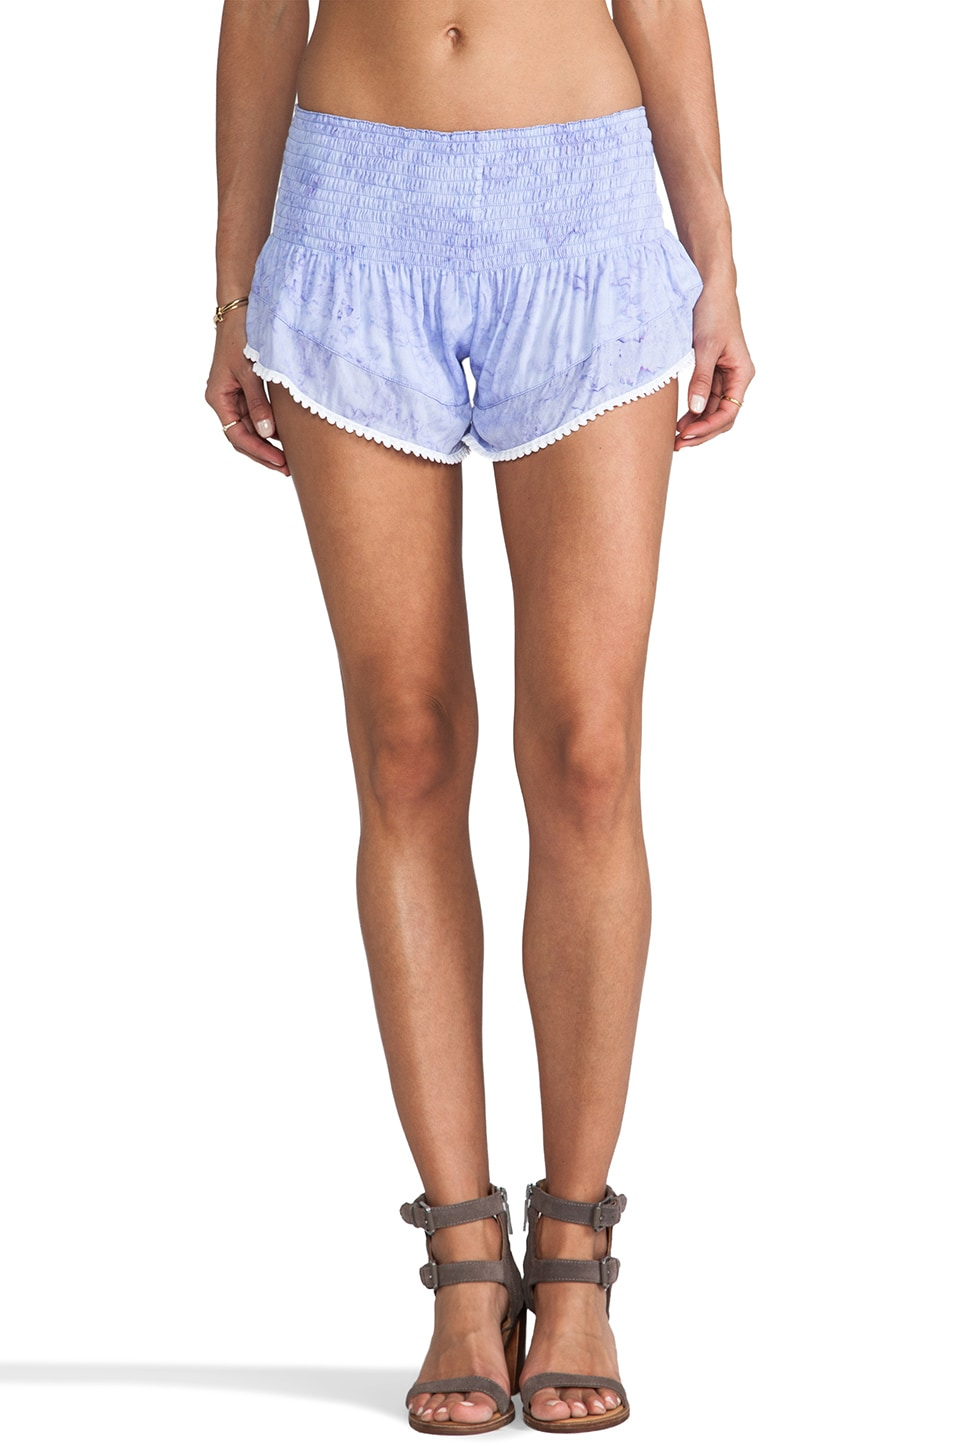 Tiare Hawaii Pom Pom Short in Violet Tie Dye